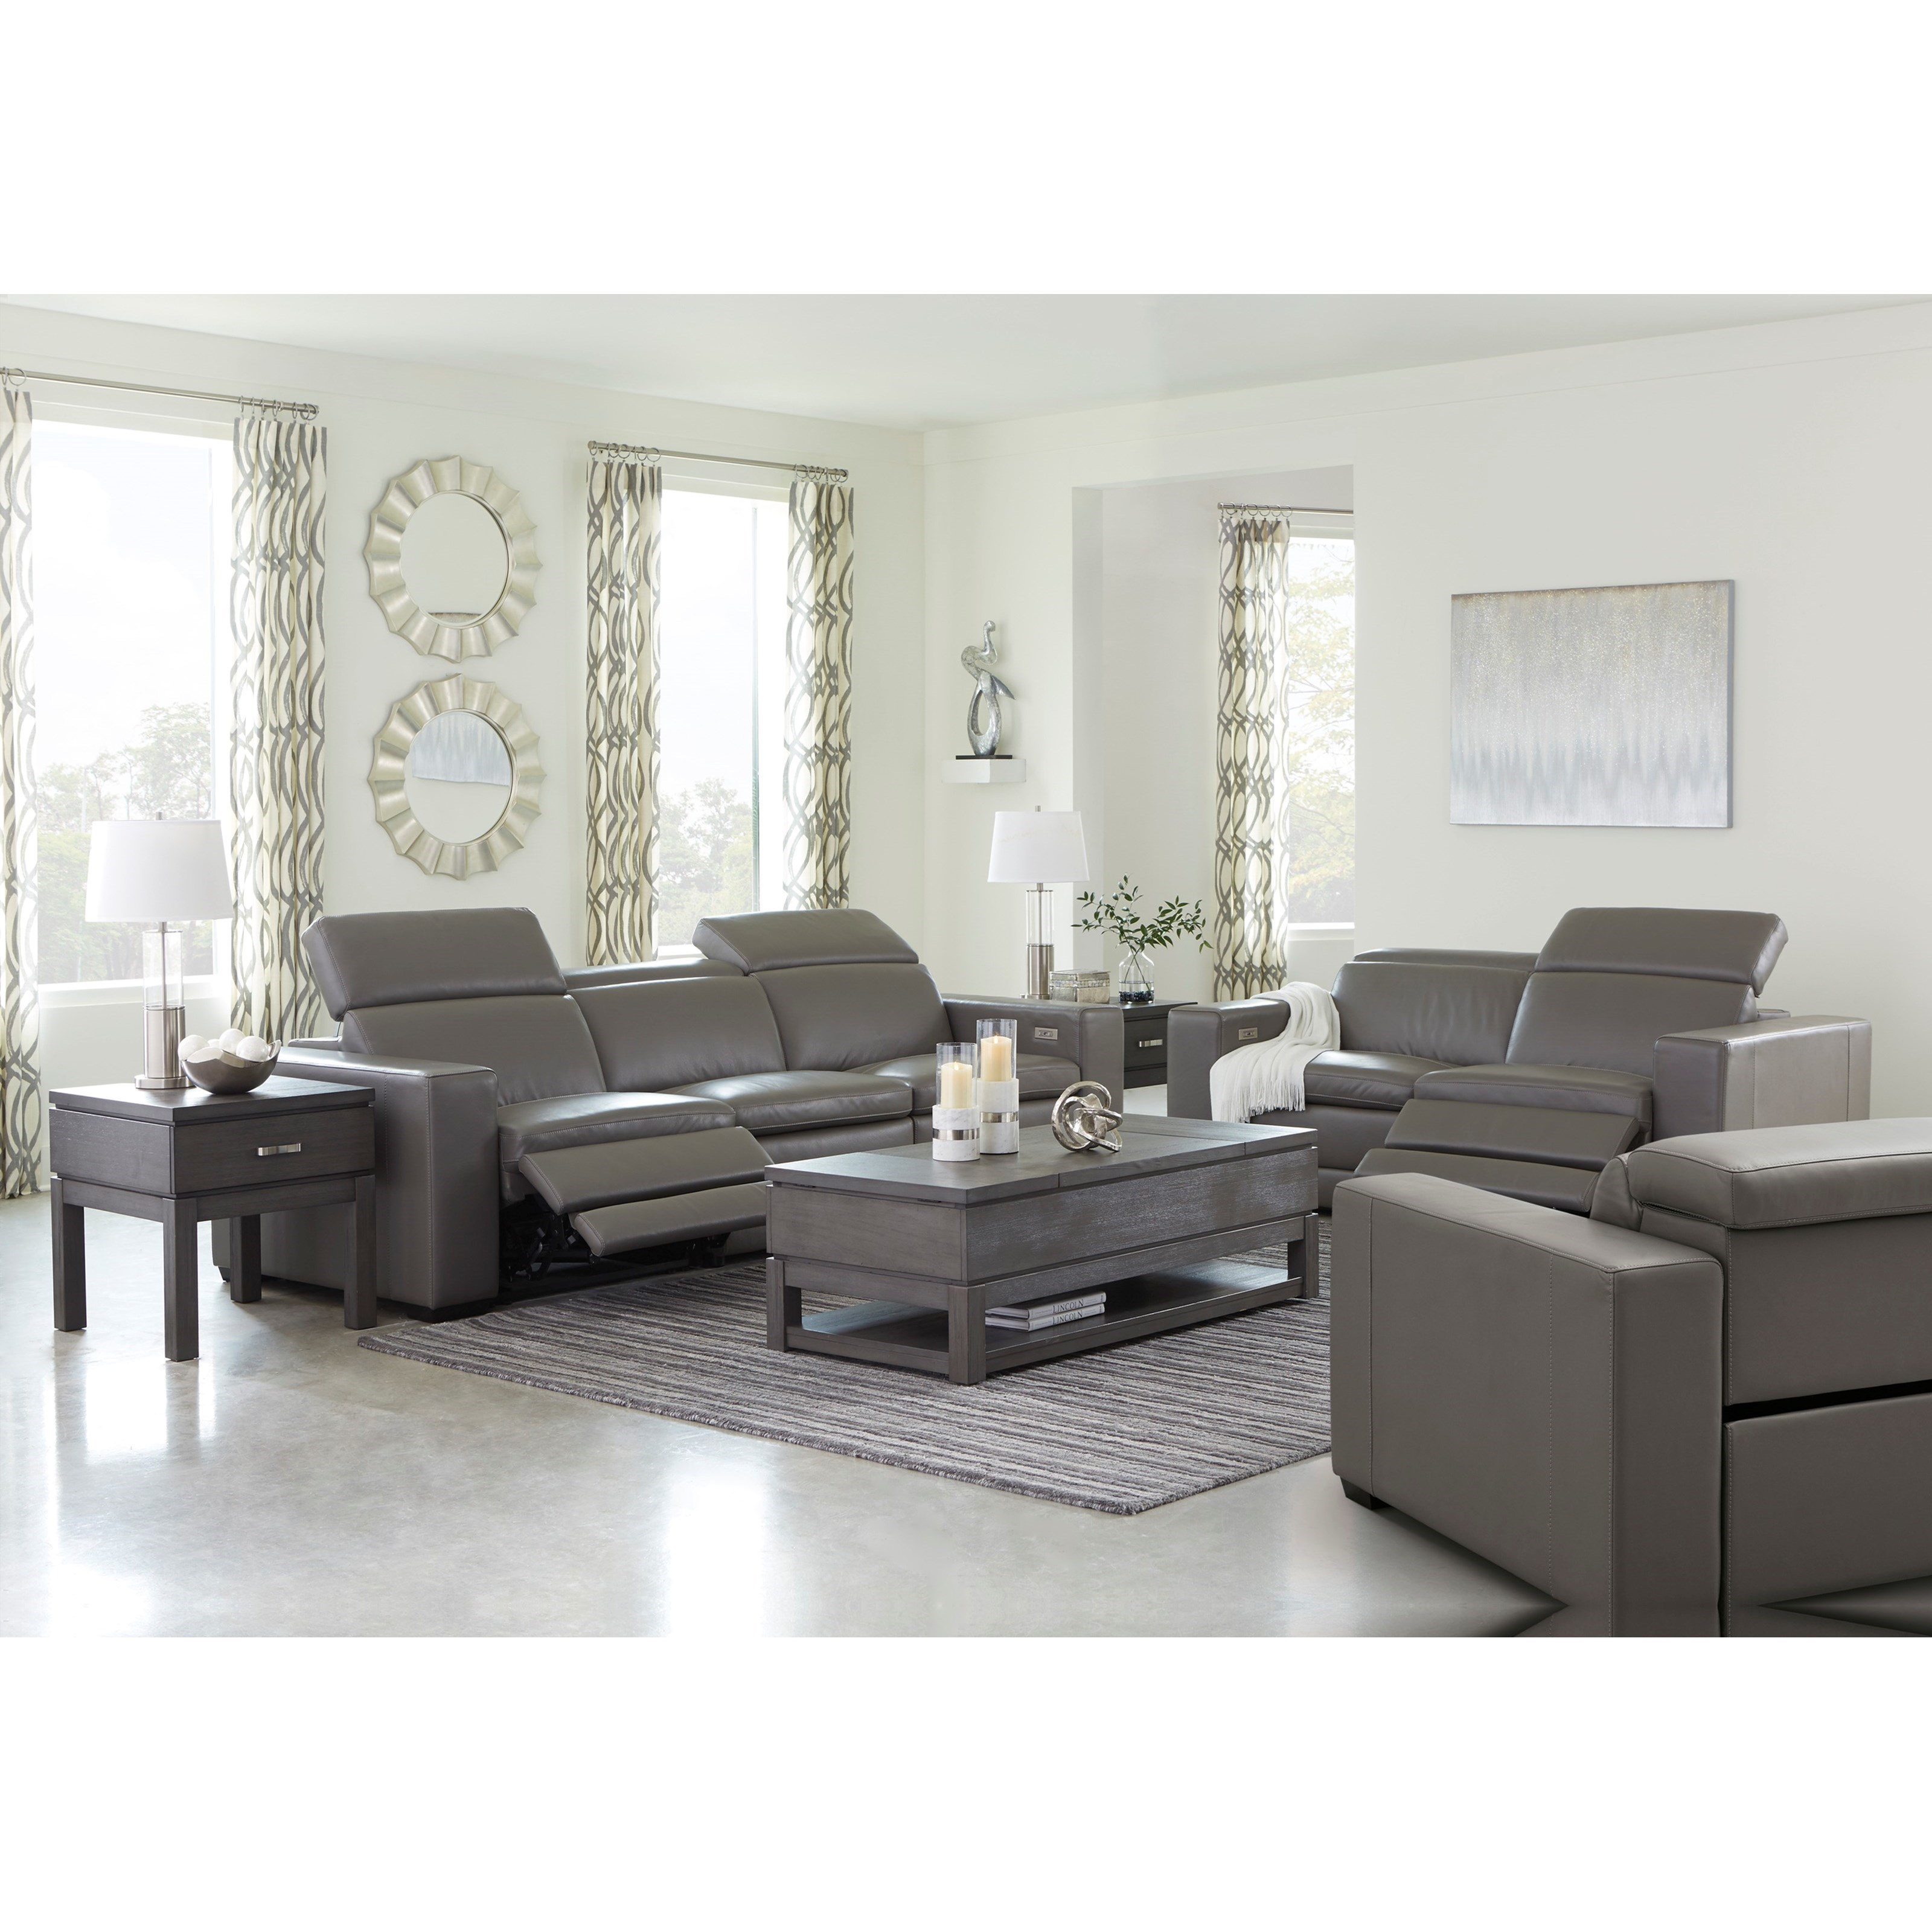 Texline Power Reclining Living Room Group by Signature Design by Ashley at Northeast Factory Direct